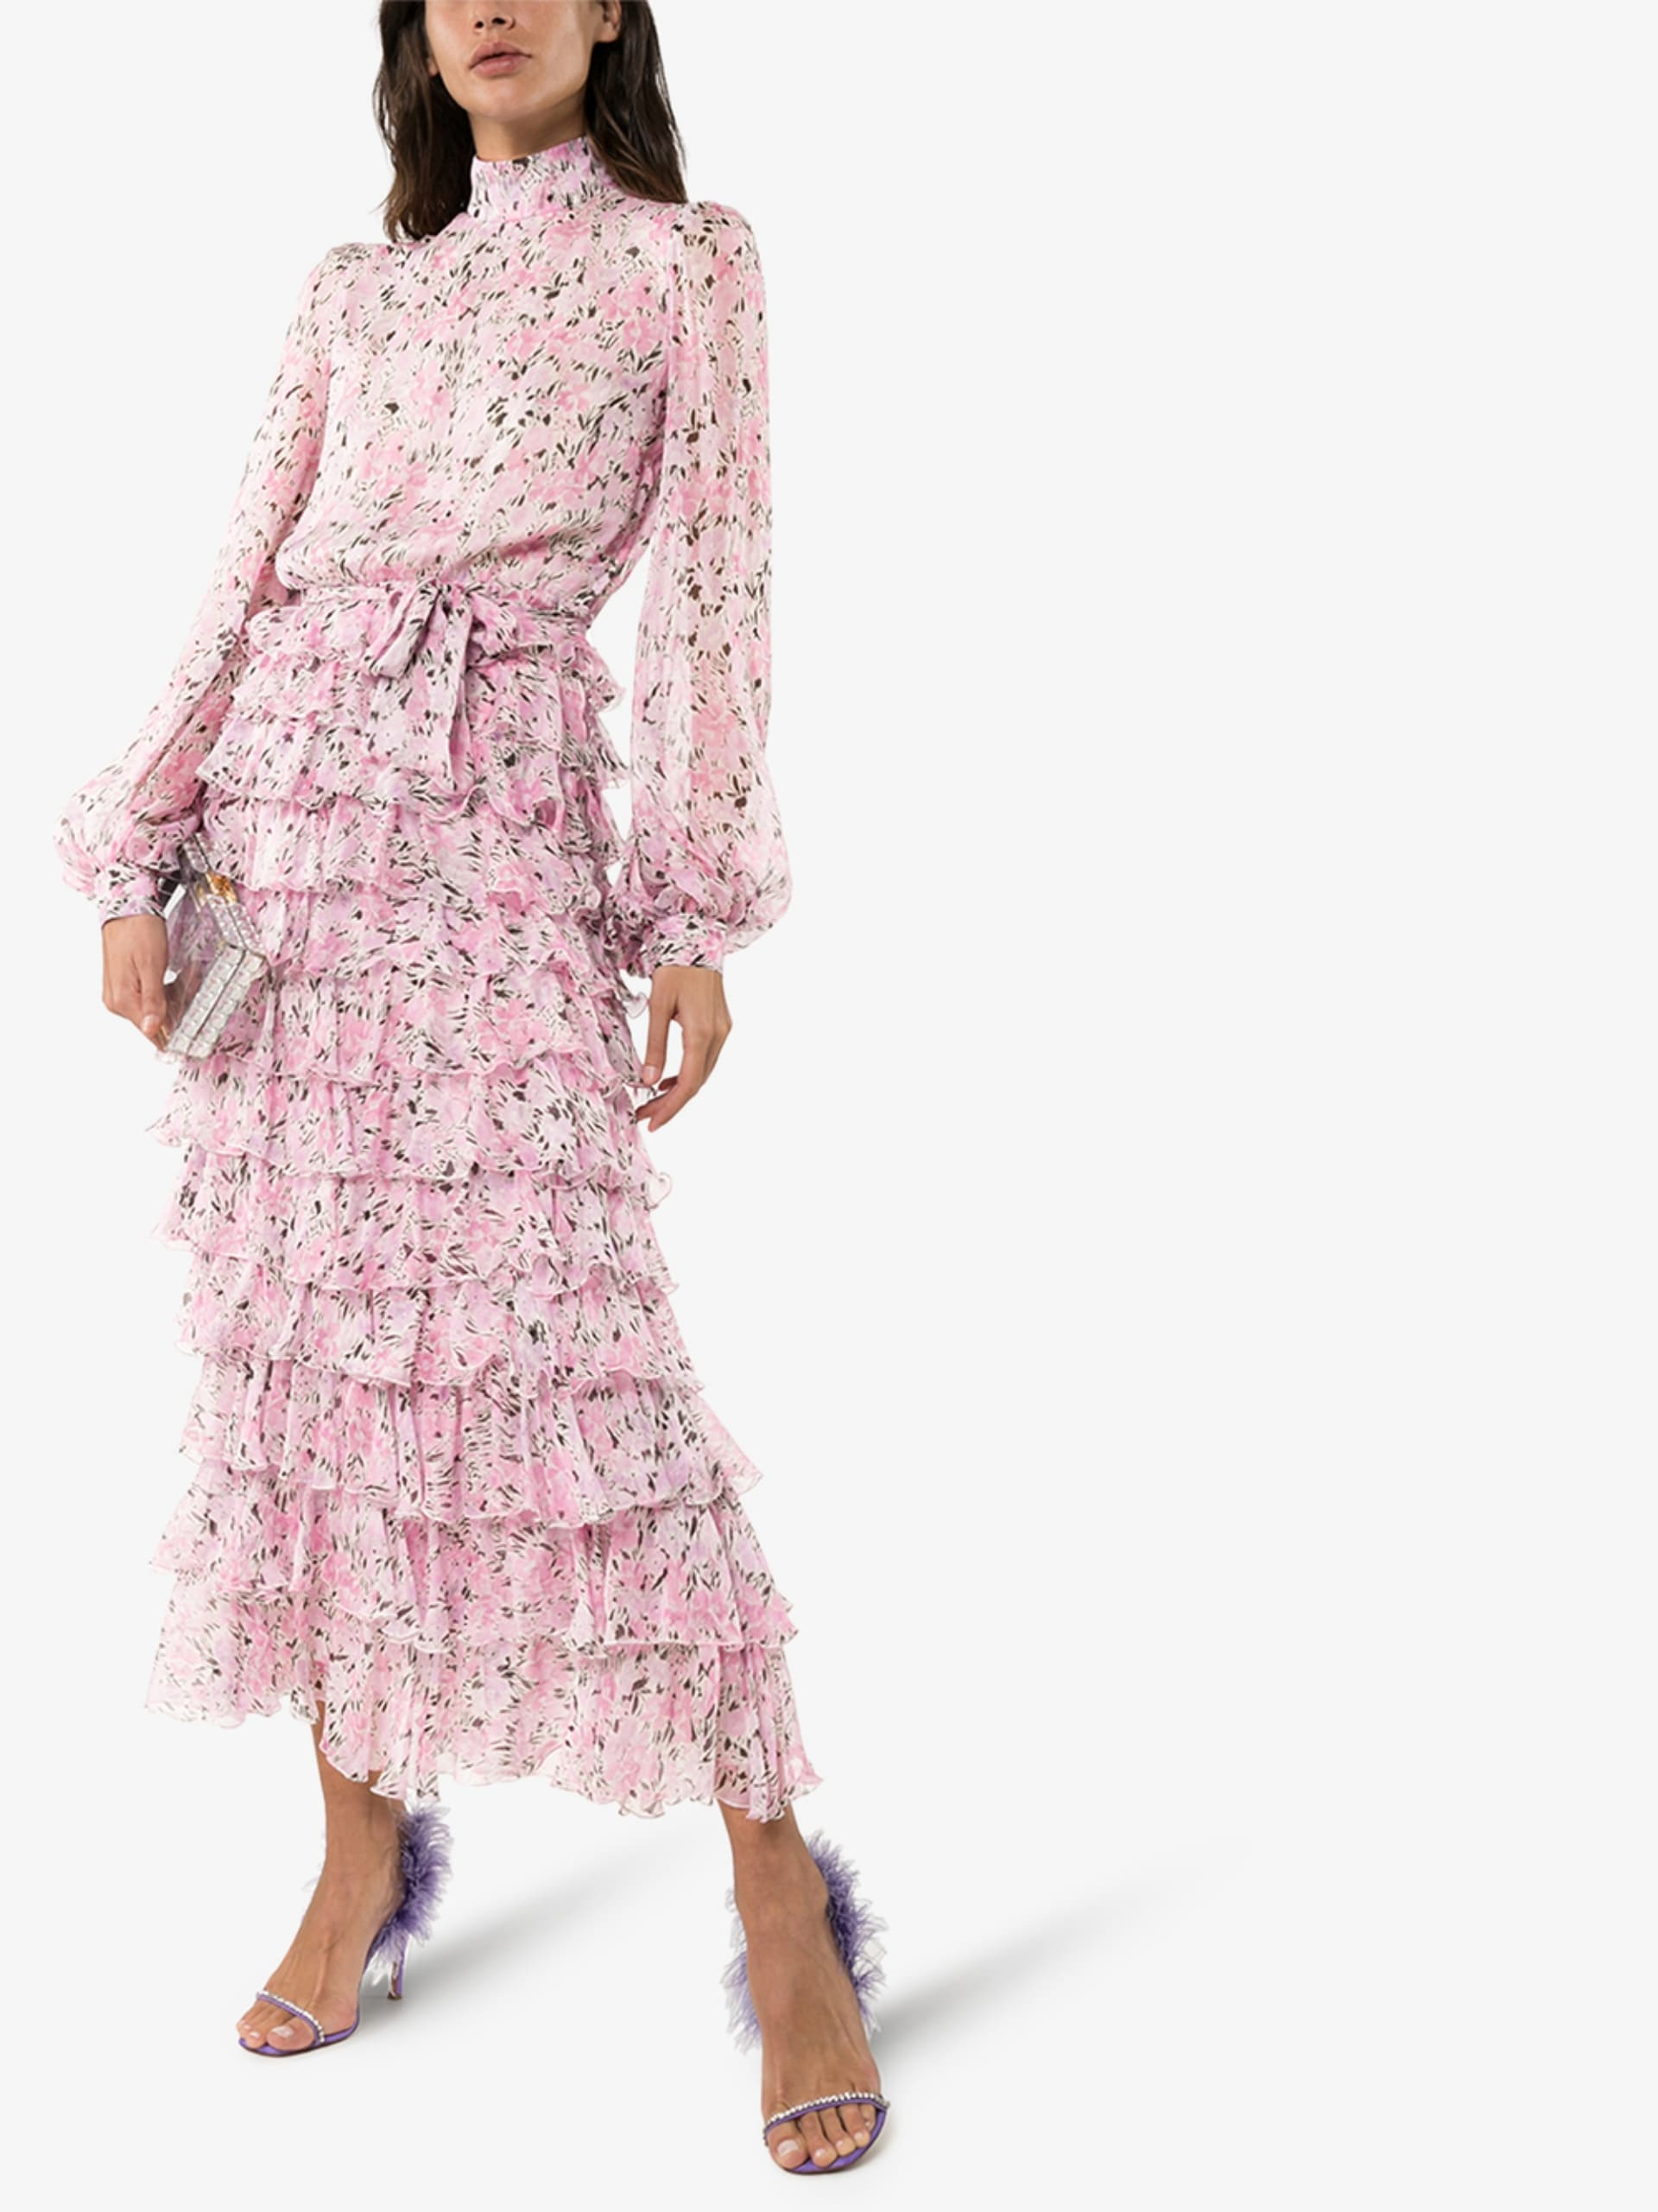 GIAMBATTISTA VALLI Floral Ruffled Silk Dress